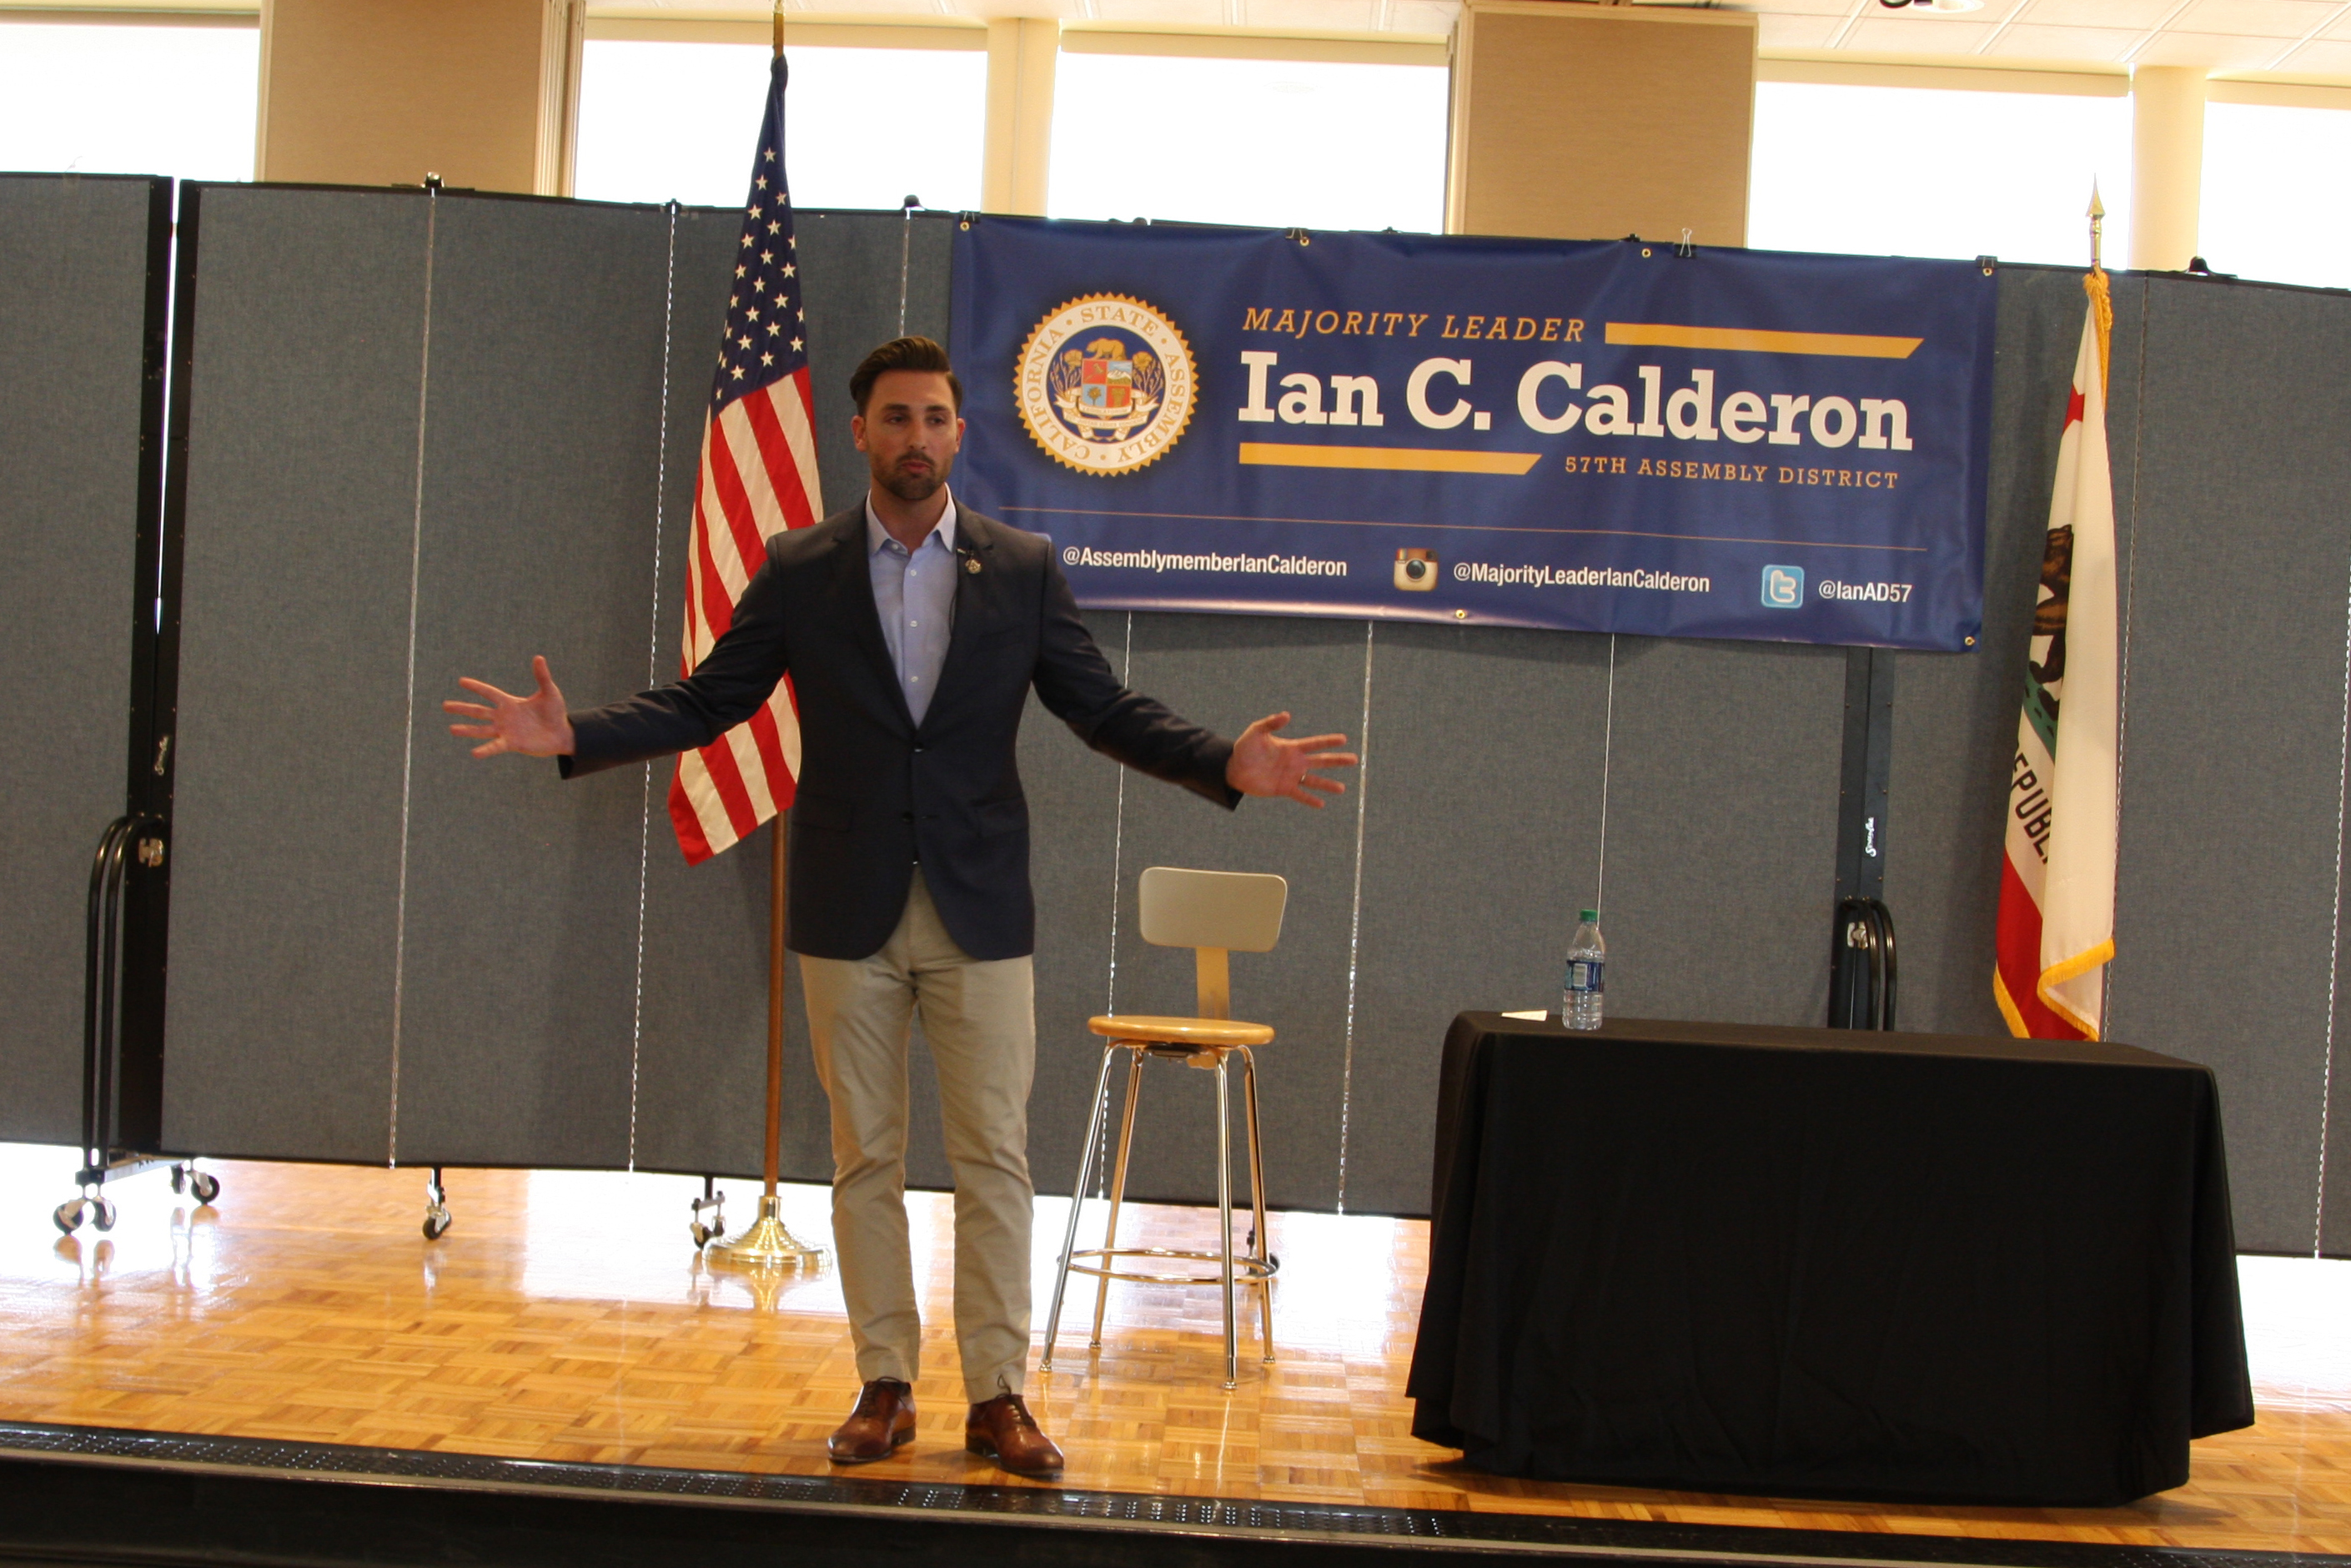 ASCC hosts Pizza & Politics with Ian Calderon